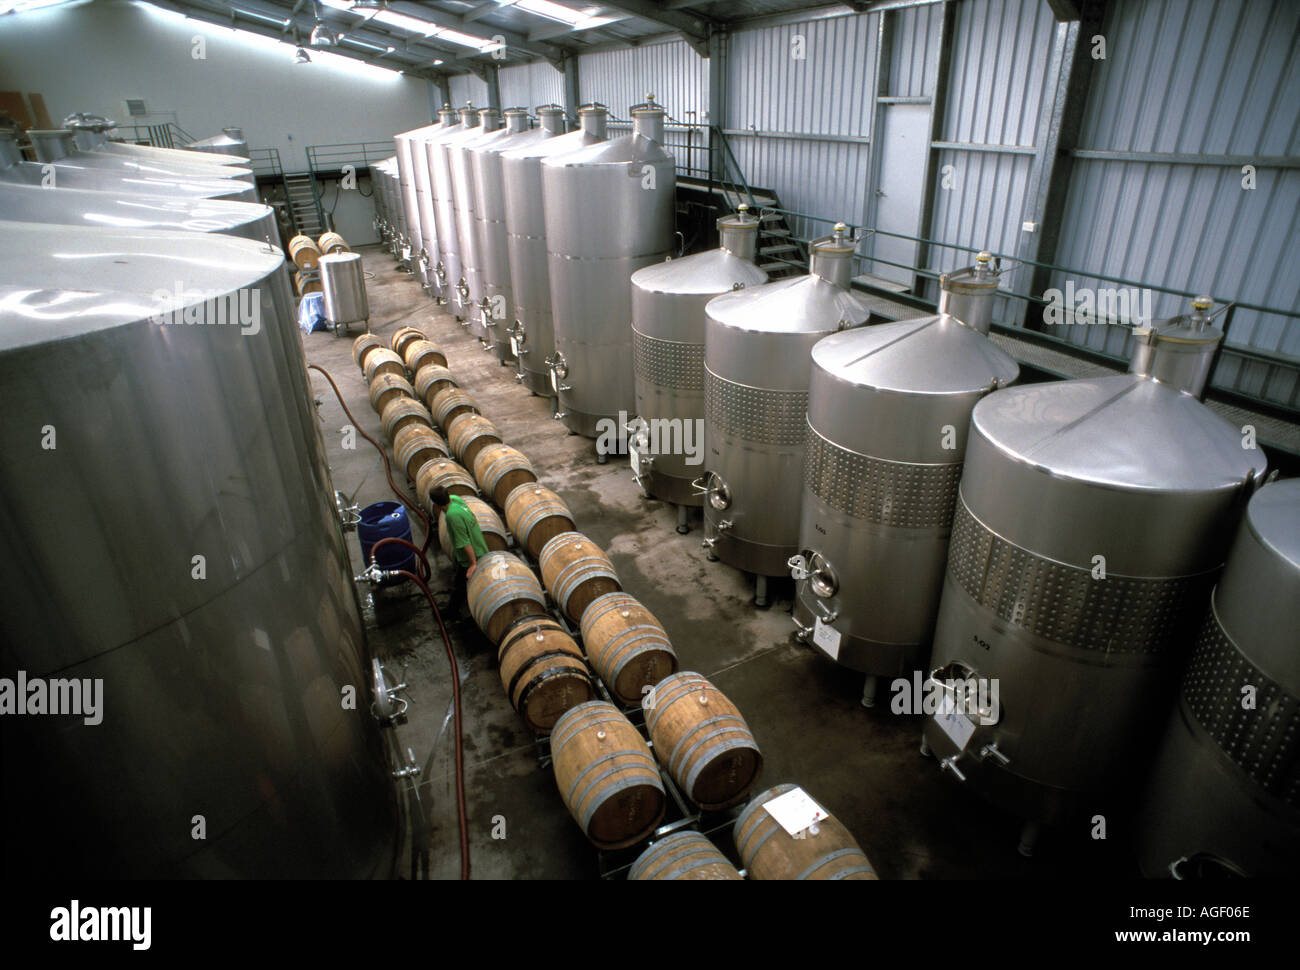 New Zealand Renwick Wine Storage Tanks At Framingham Winery Marlborough  Region